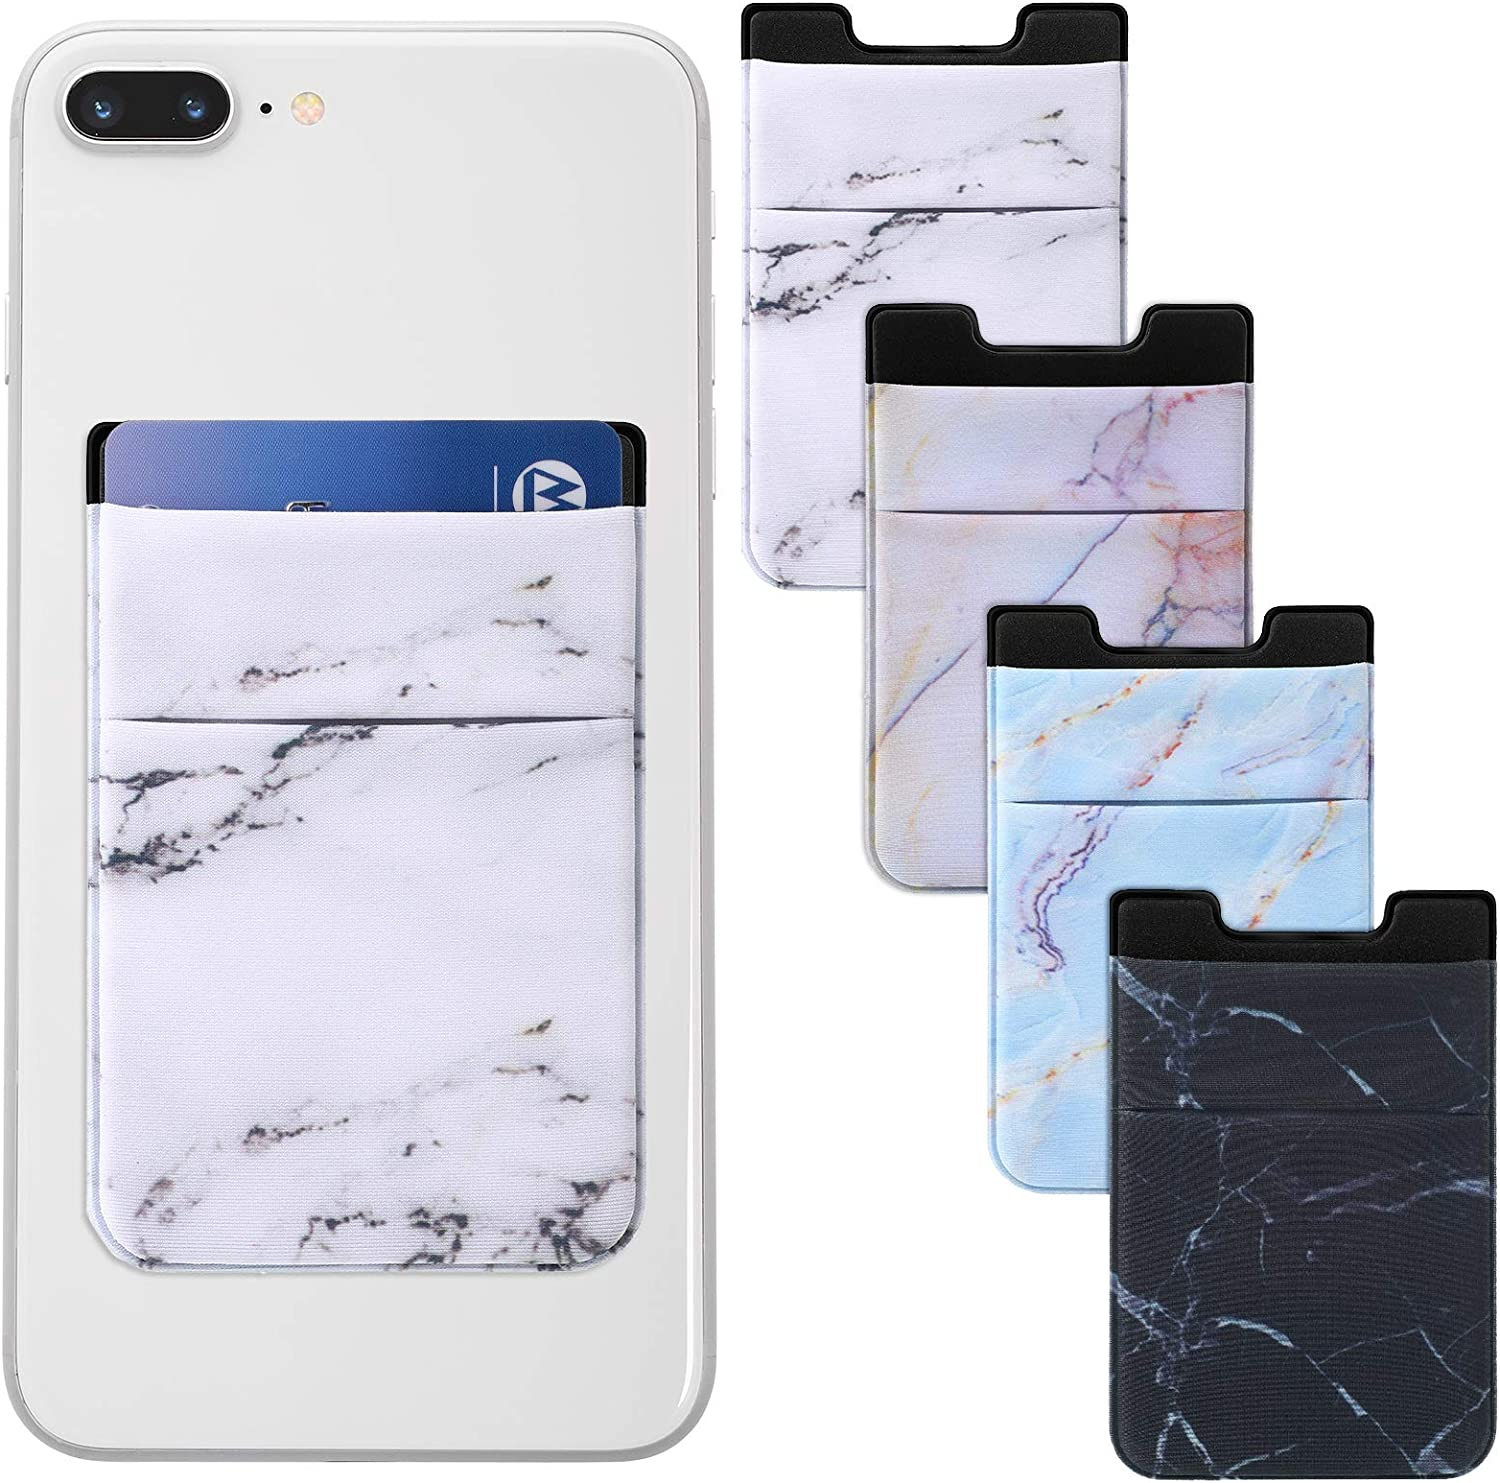 Weewooday 4 Pieces Cell Phone Stick On Wallet Stretchy Marble Pattern Double Pouch Phone Card Holder Phone Wallet Pocket for Most Smartphones